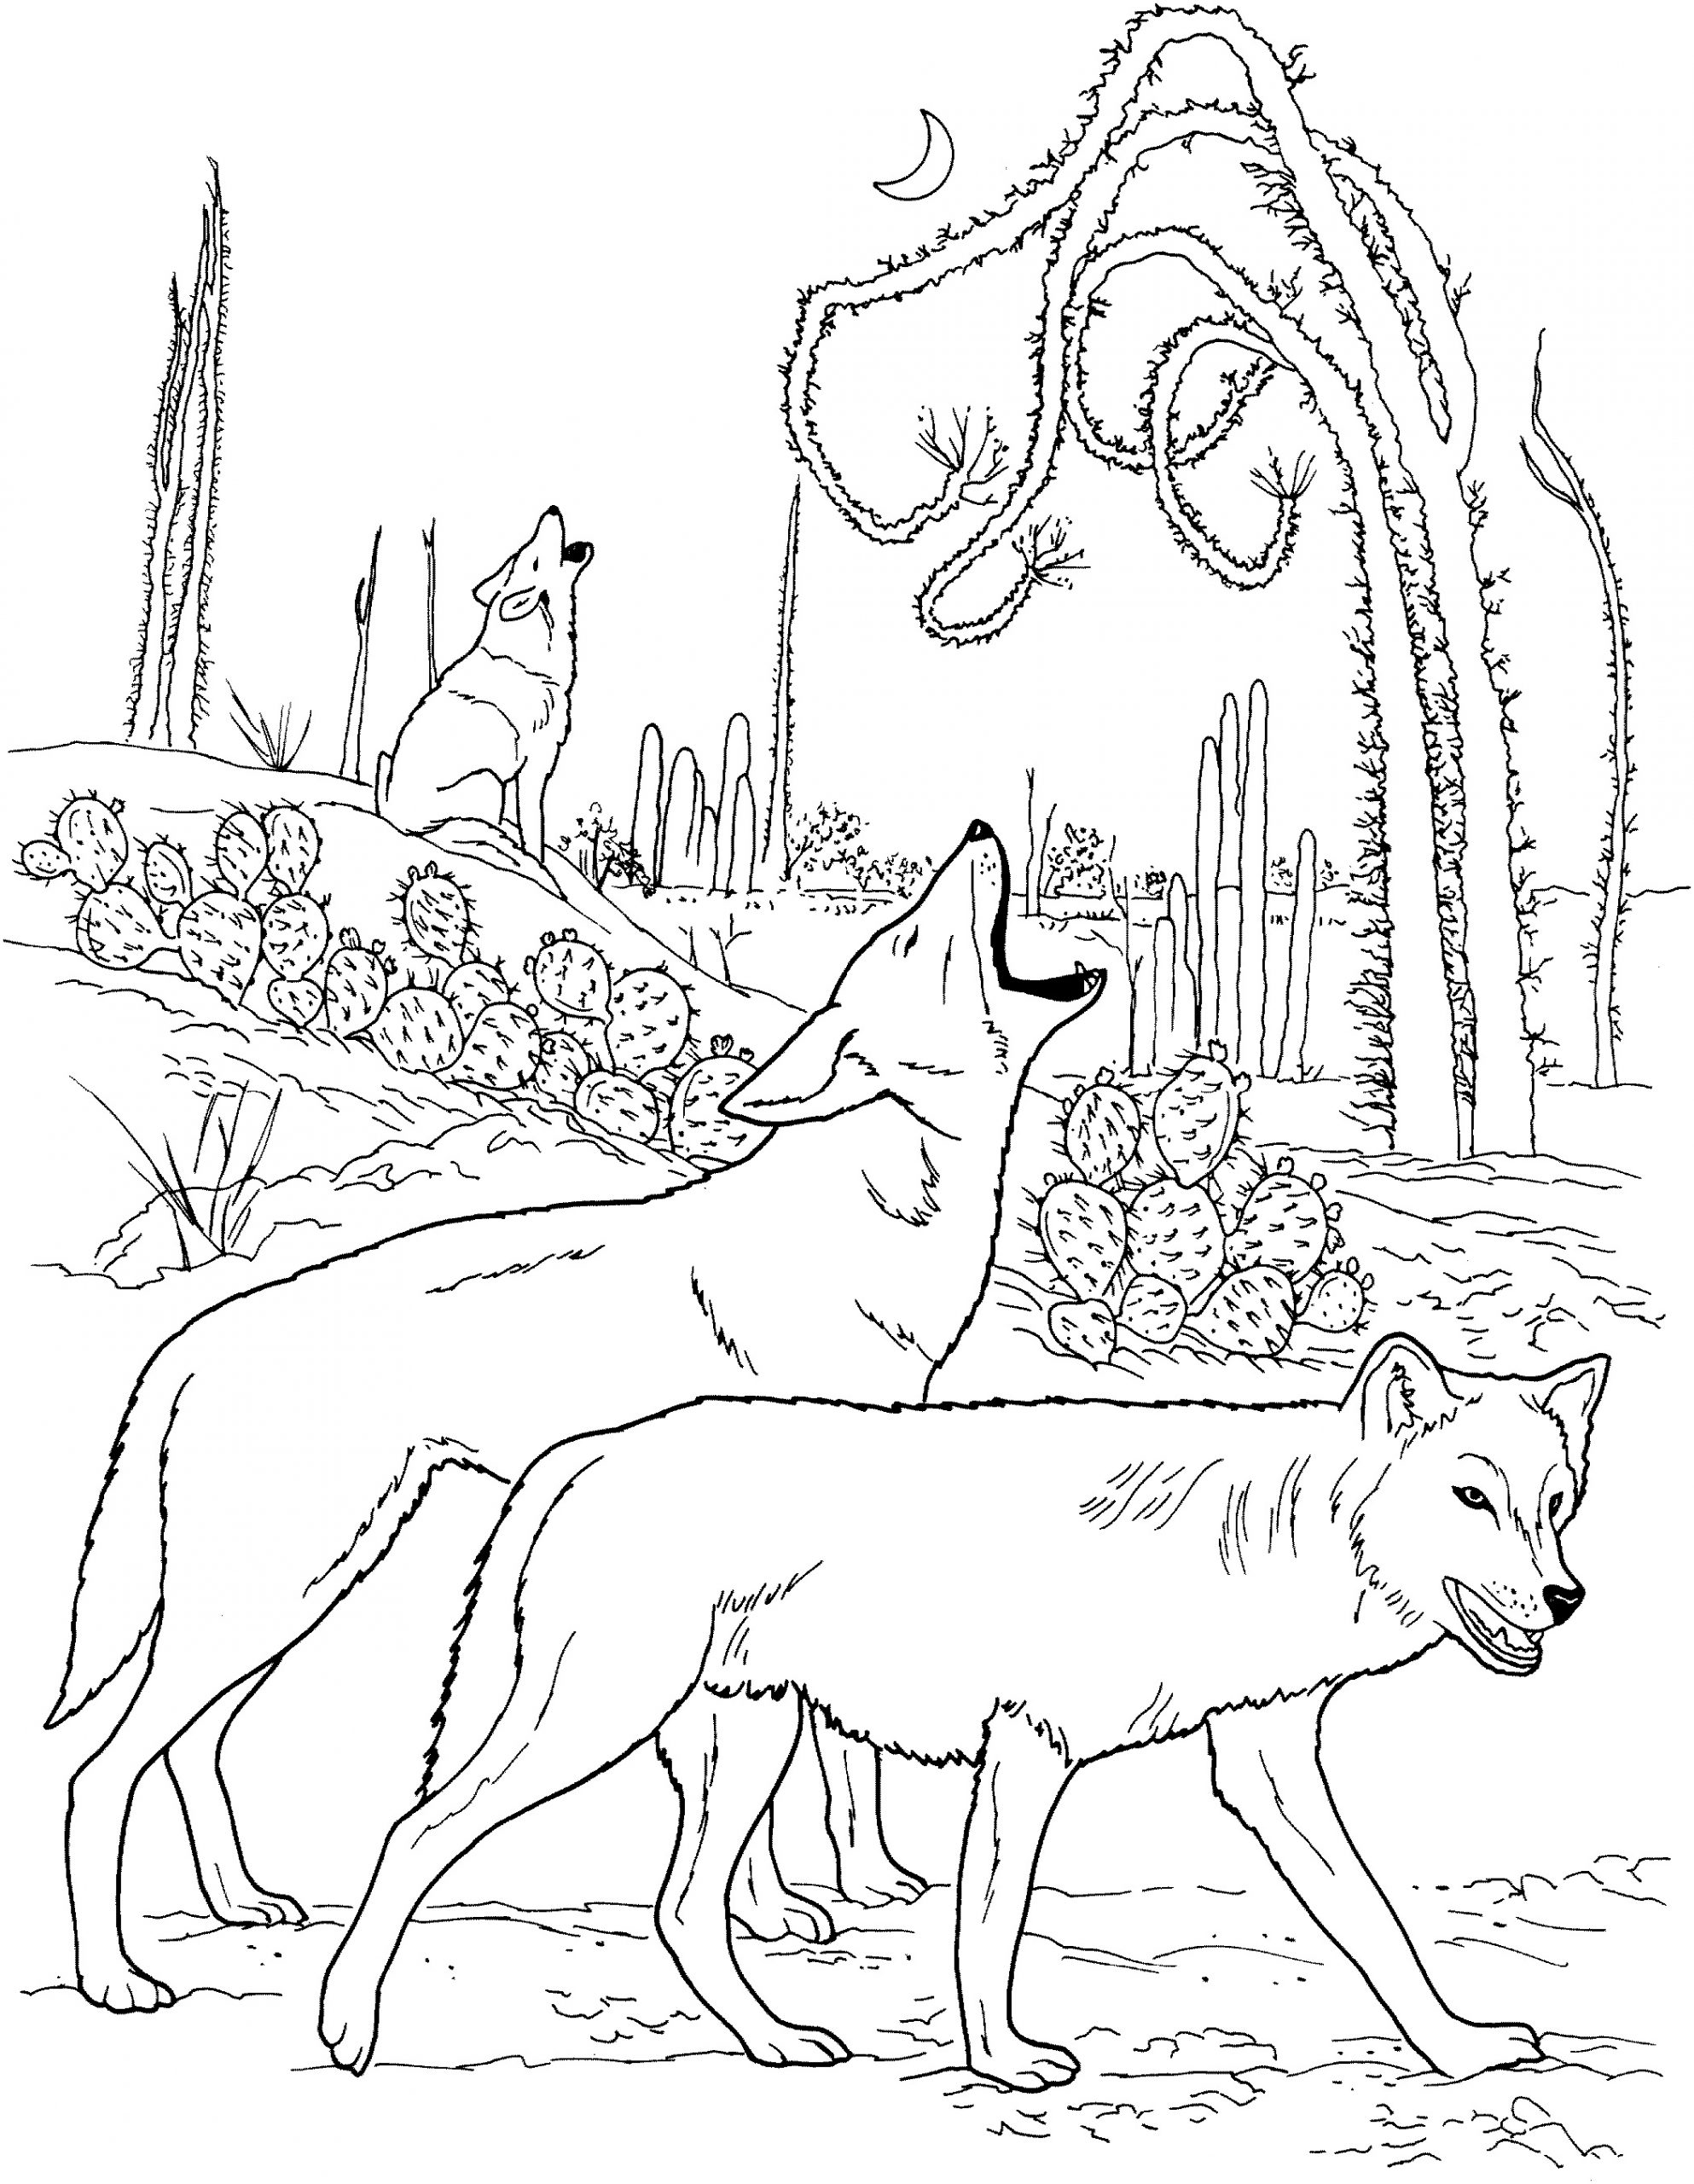 wolf coloring pages howling at moon Coloring4free - Coloring4Free.com | 2560x1986